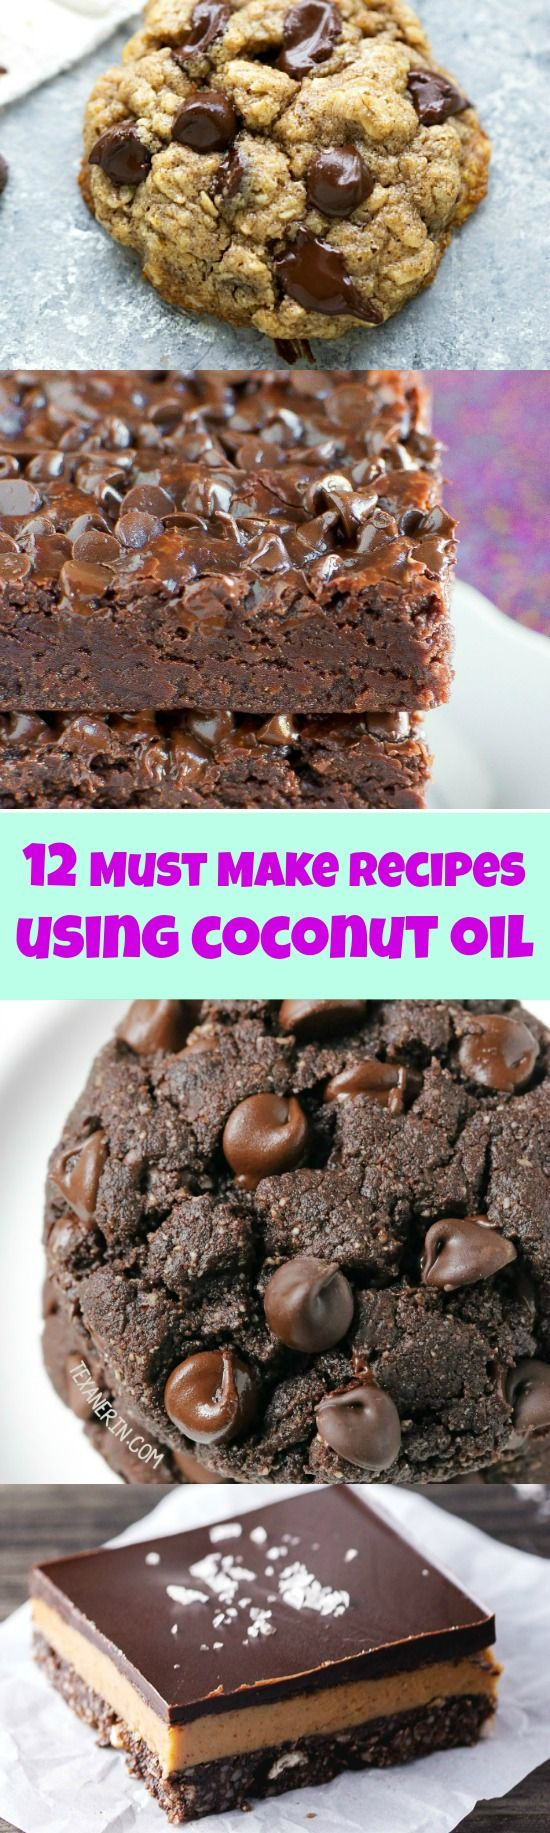 Baking with Coconut Oil - 12 Must Make Recipes! These are amazing! The brownies are killer!!                                                                                                                                                                                 More